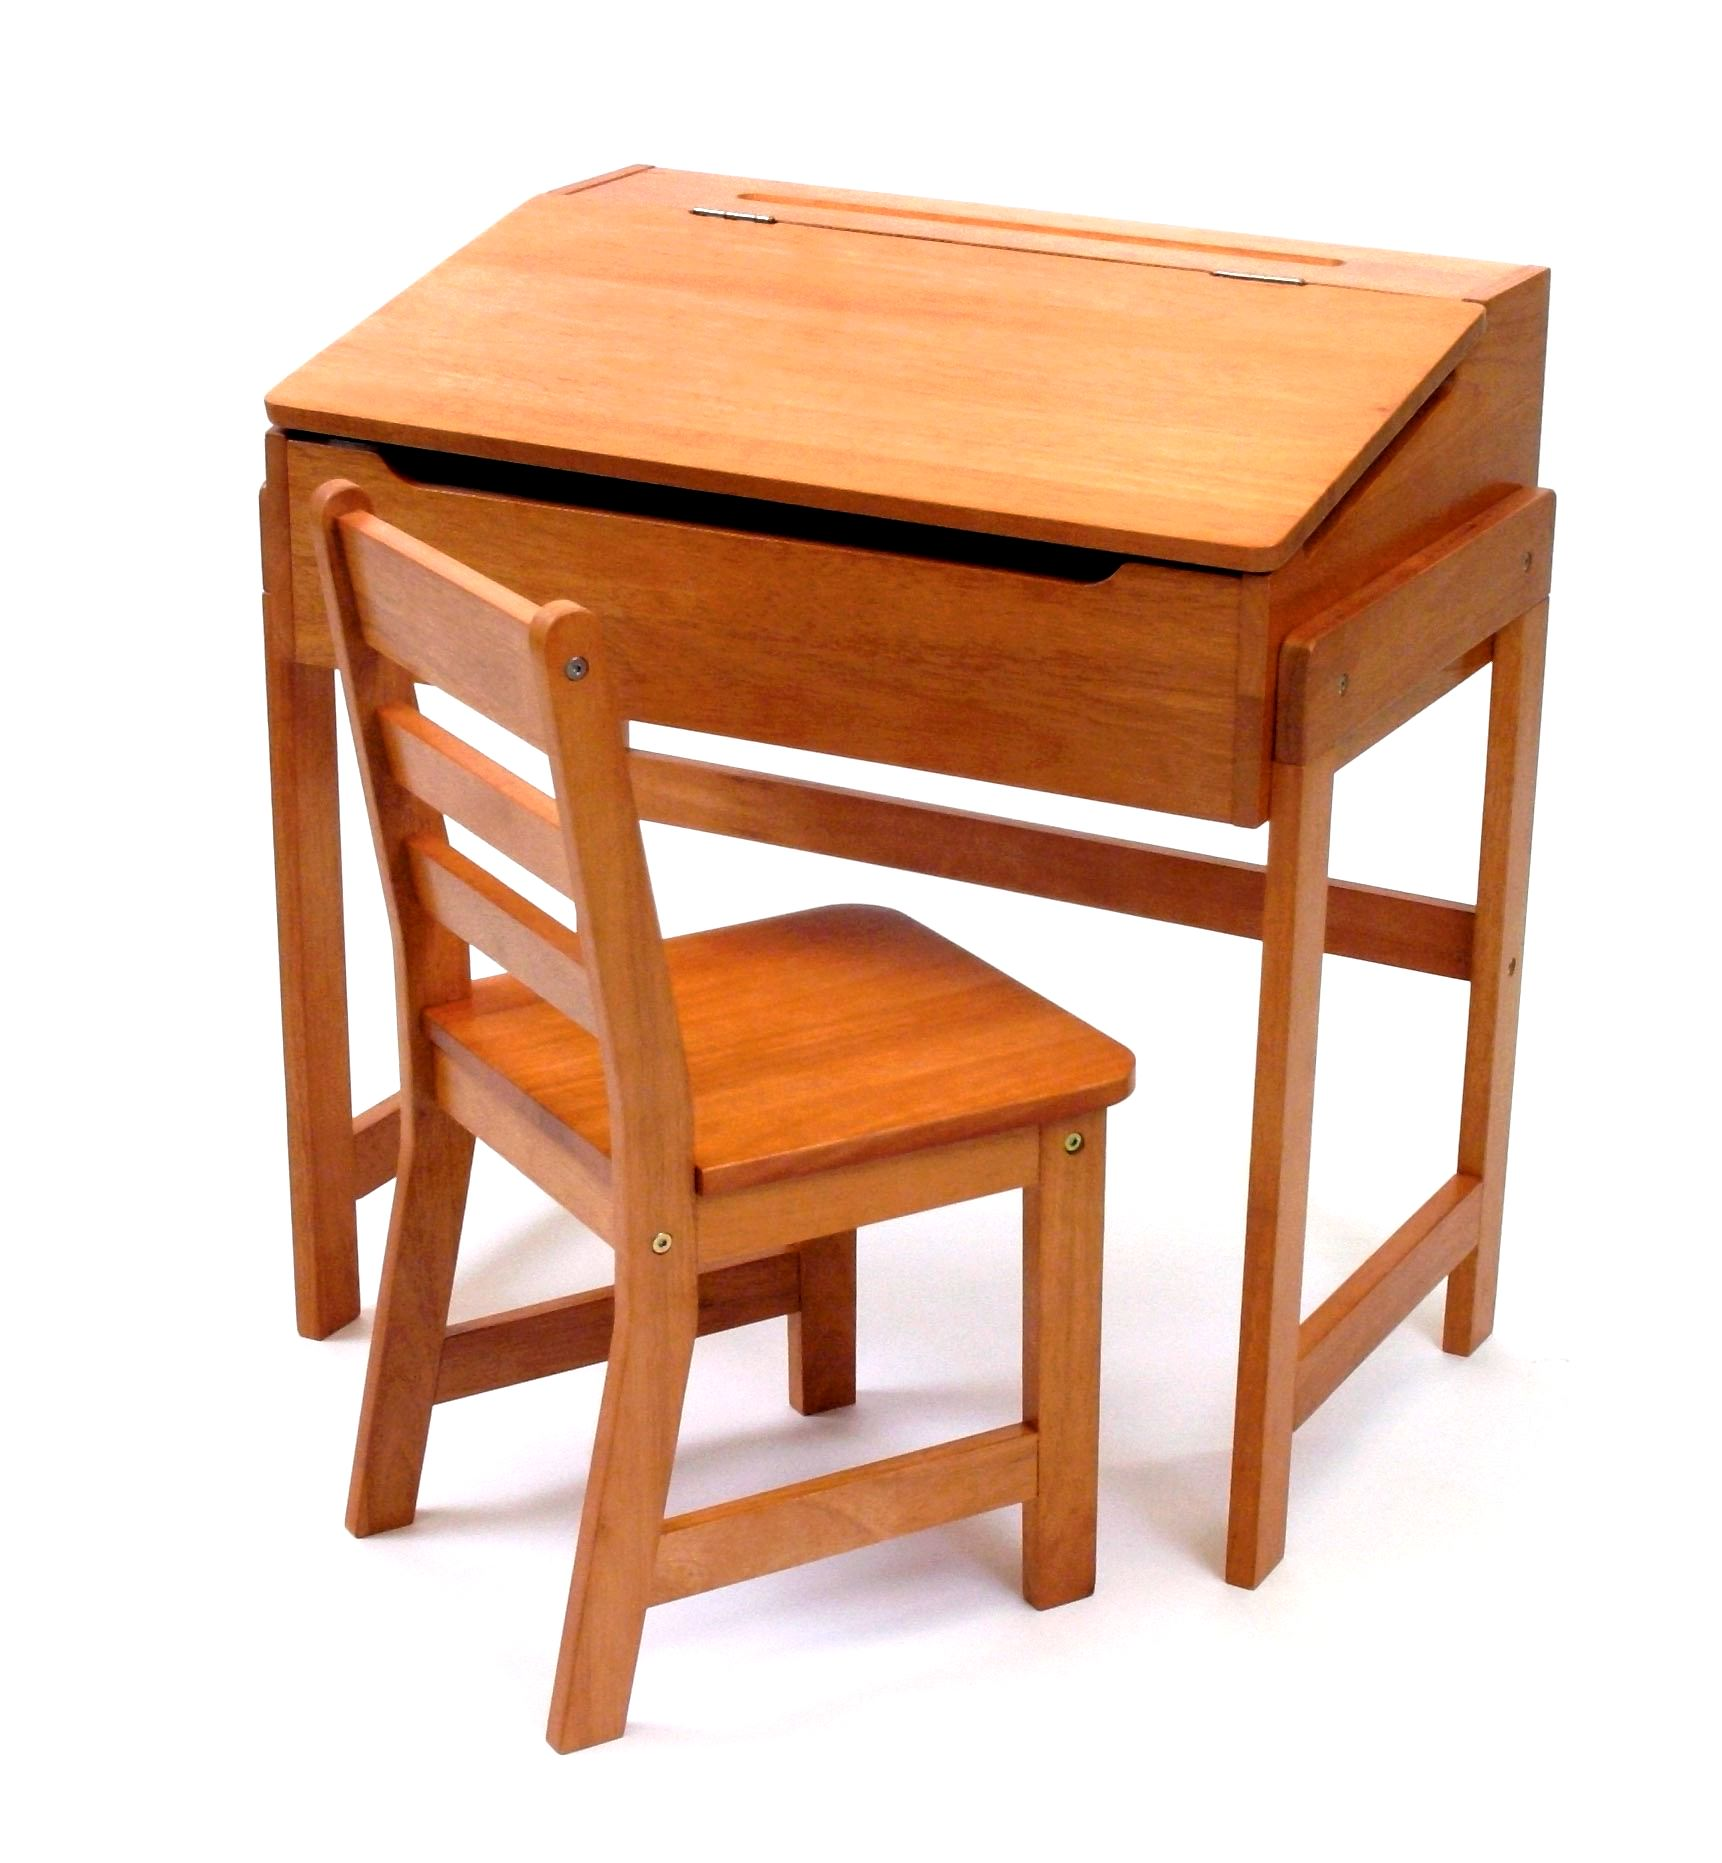 Lipper Kids Desk with Chair, Slanted Top, Multiple Finishes